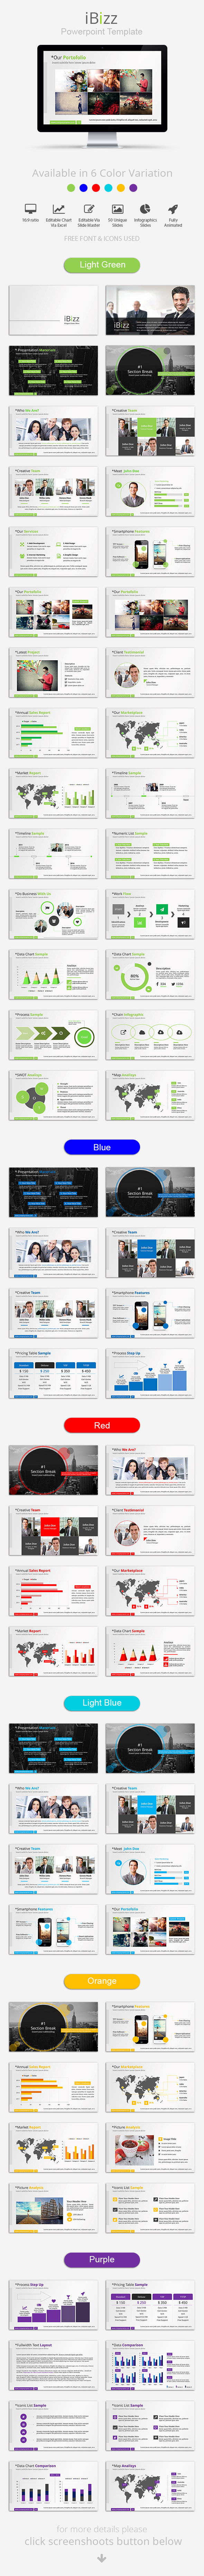 GraphicRiver iBizz Powerpoint Template 9538950